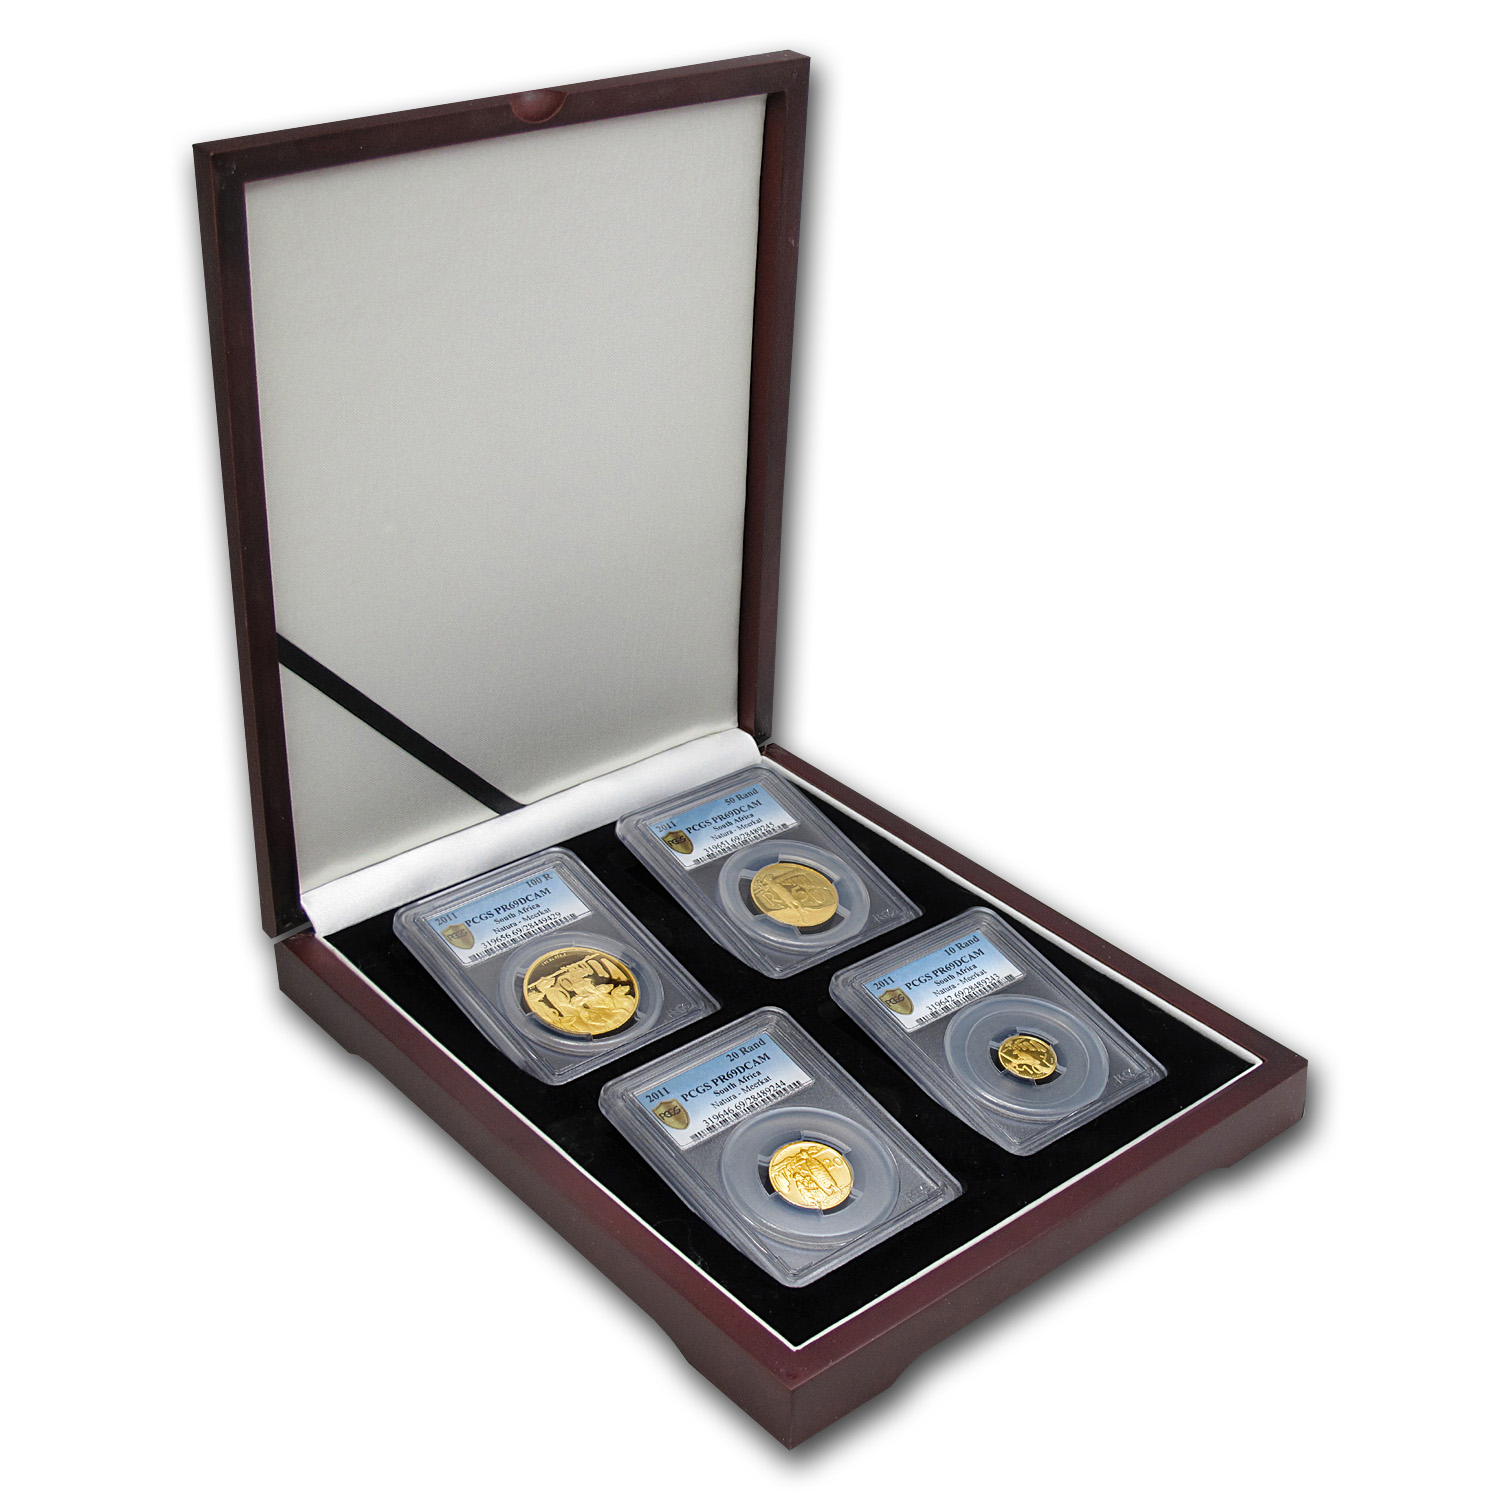 2011 Gold South African Natura 4 Coin Pf Set (Meerkat) PR-69 PCGS